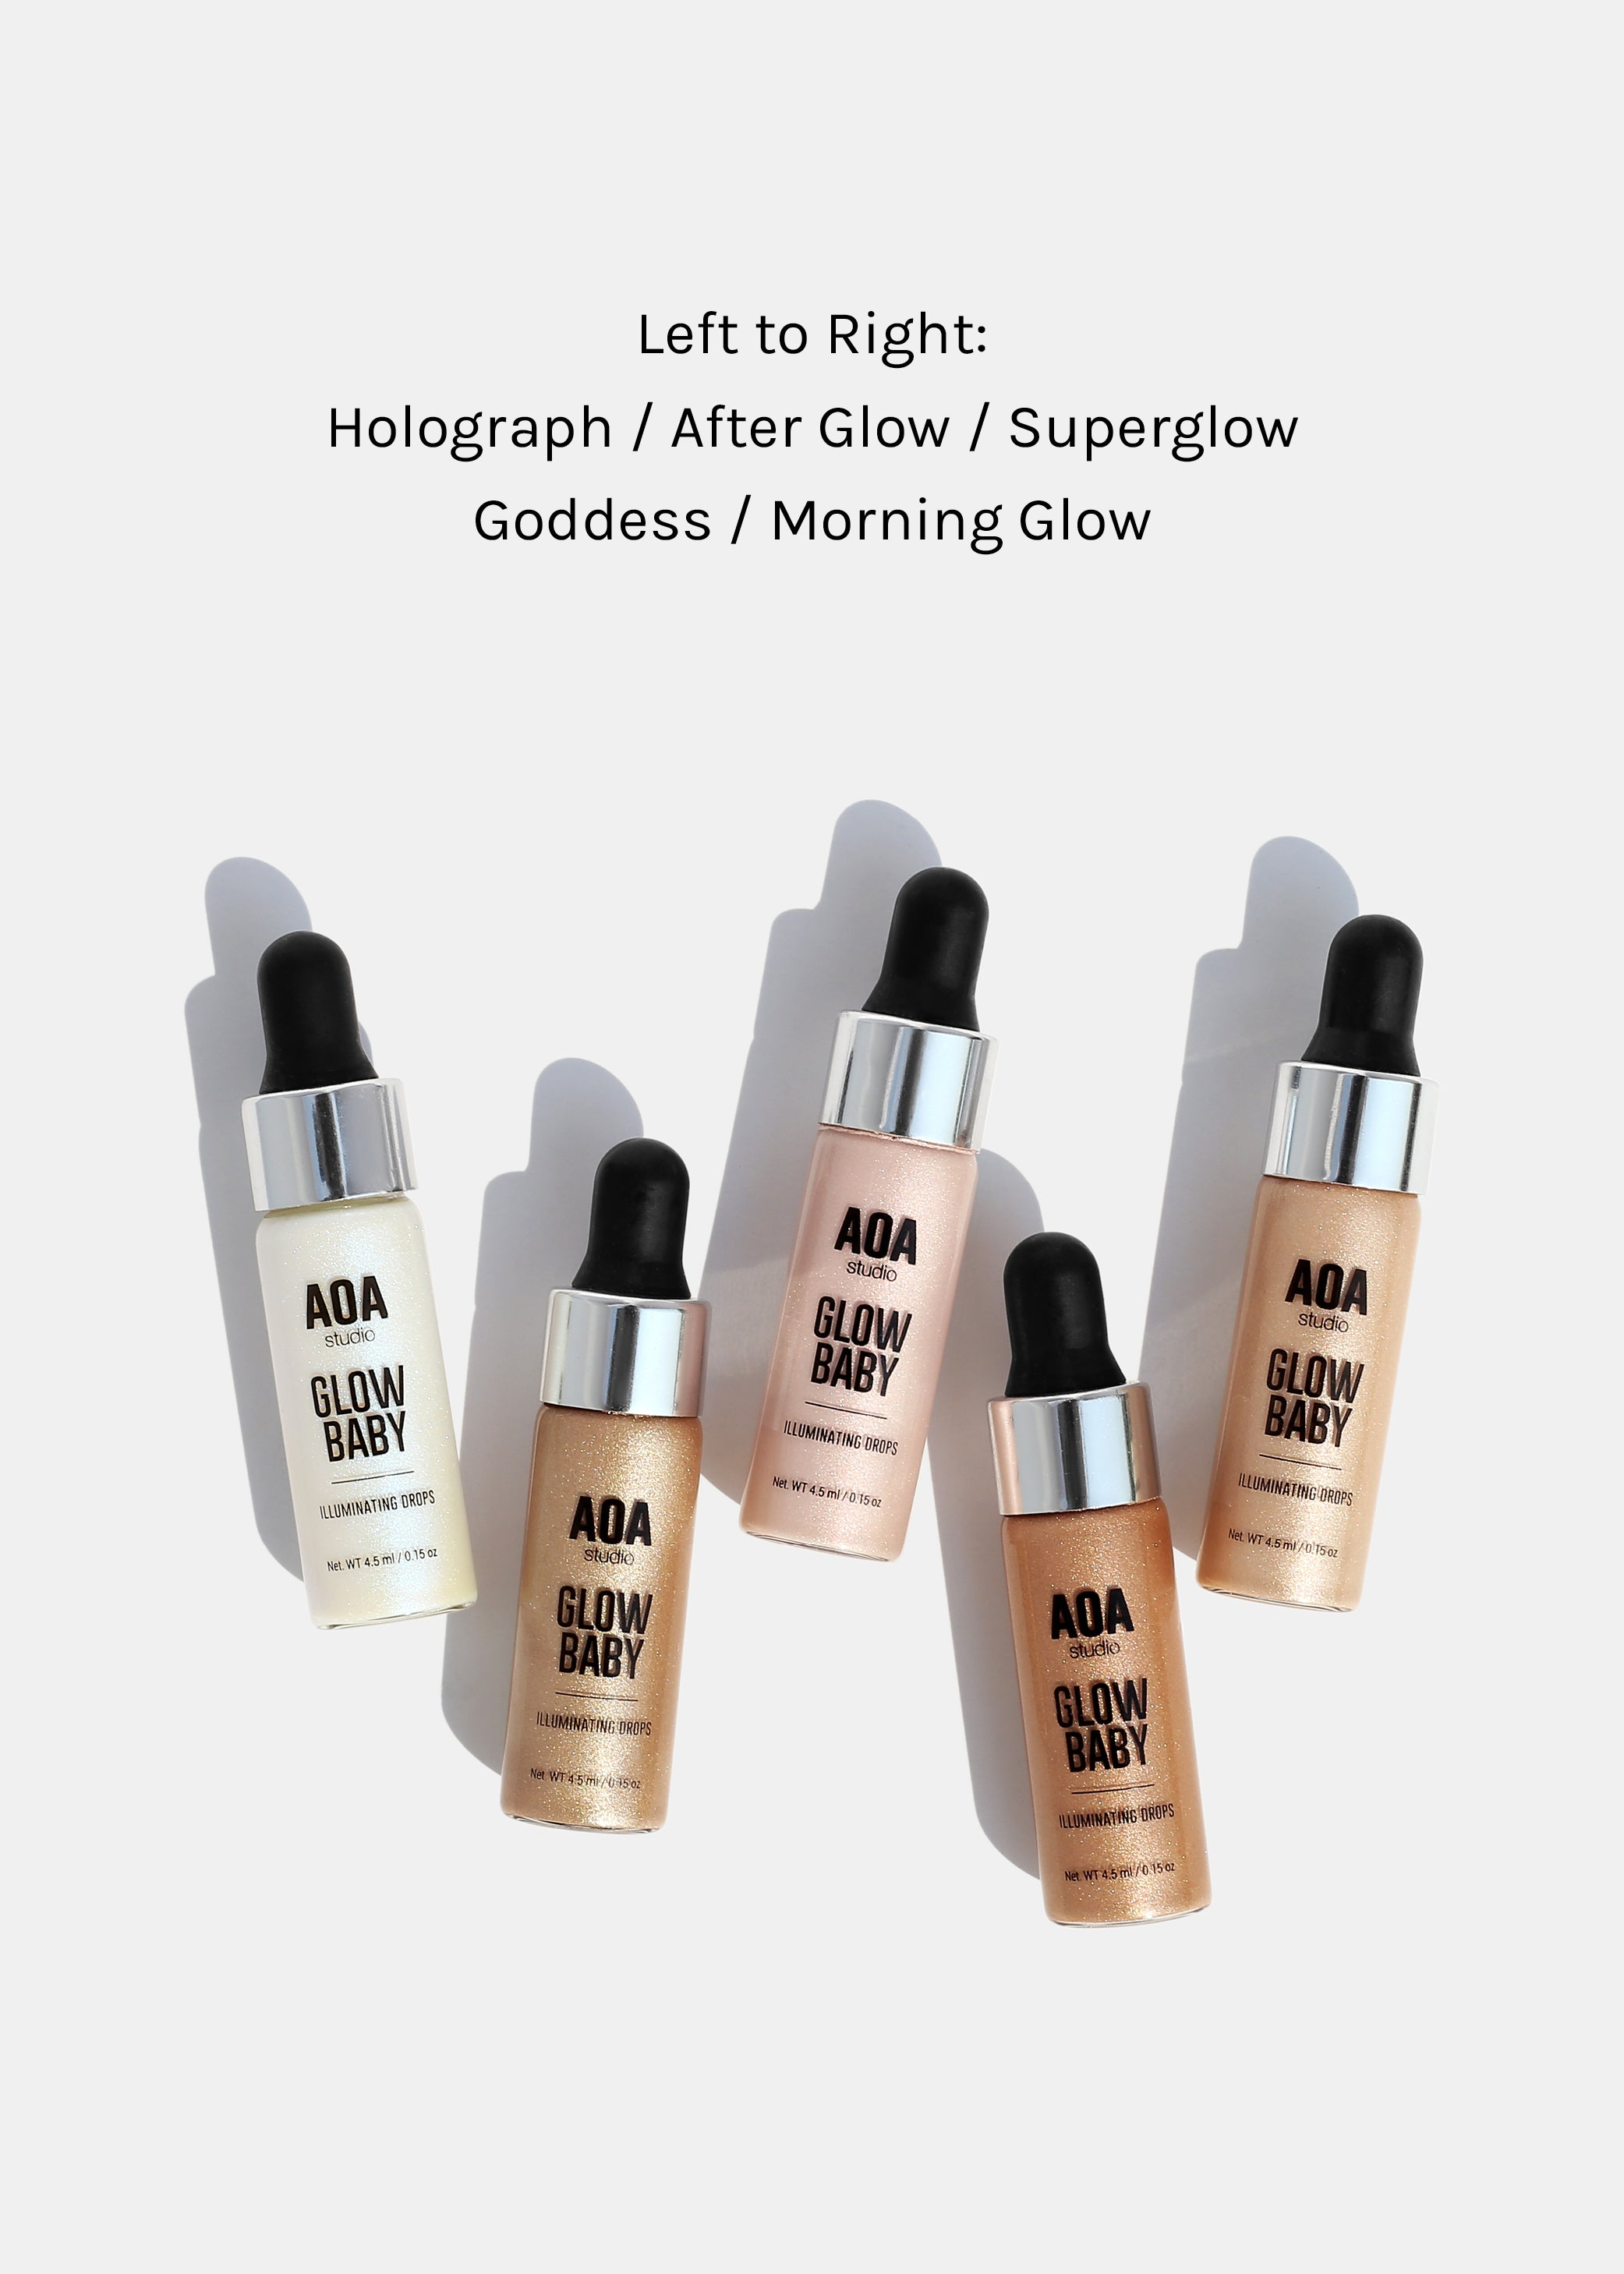 Paw Paw:Glow Baby Highlighter-Goddess